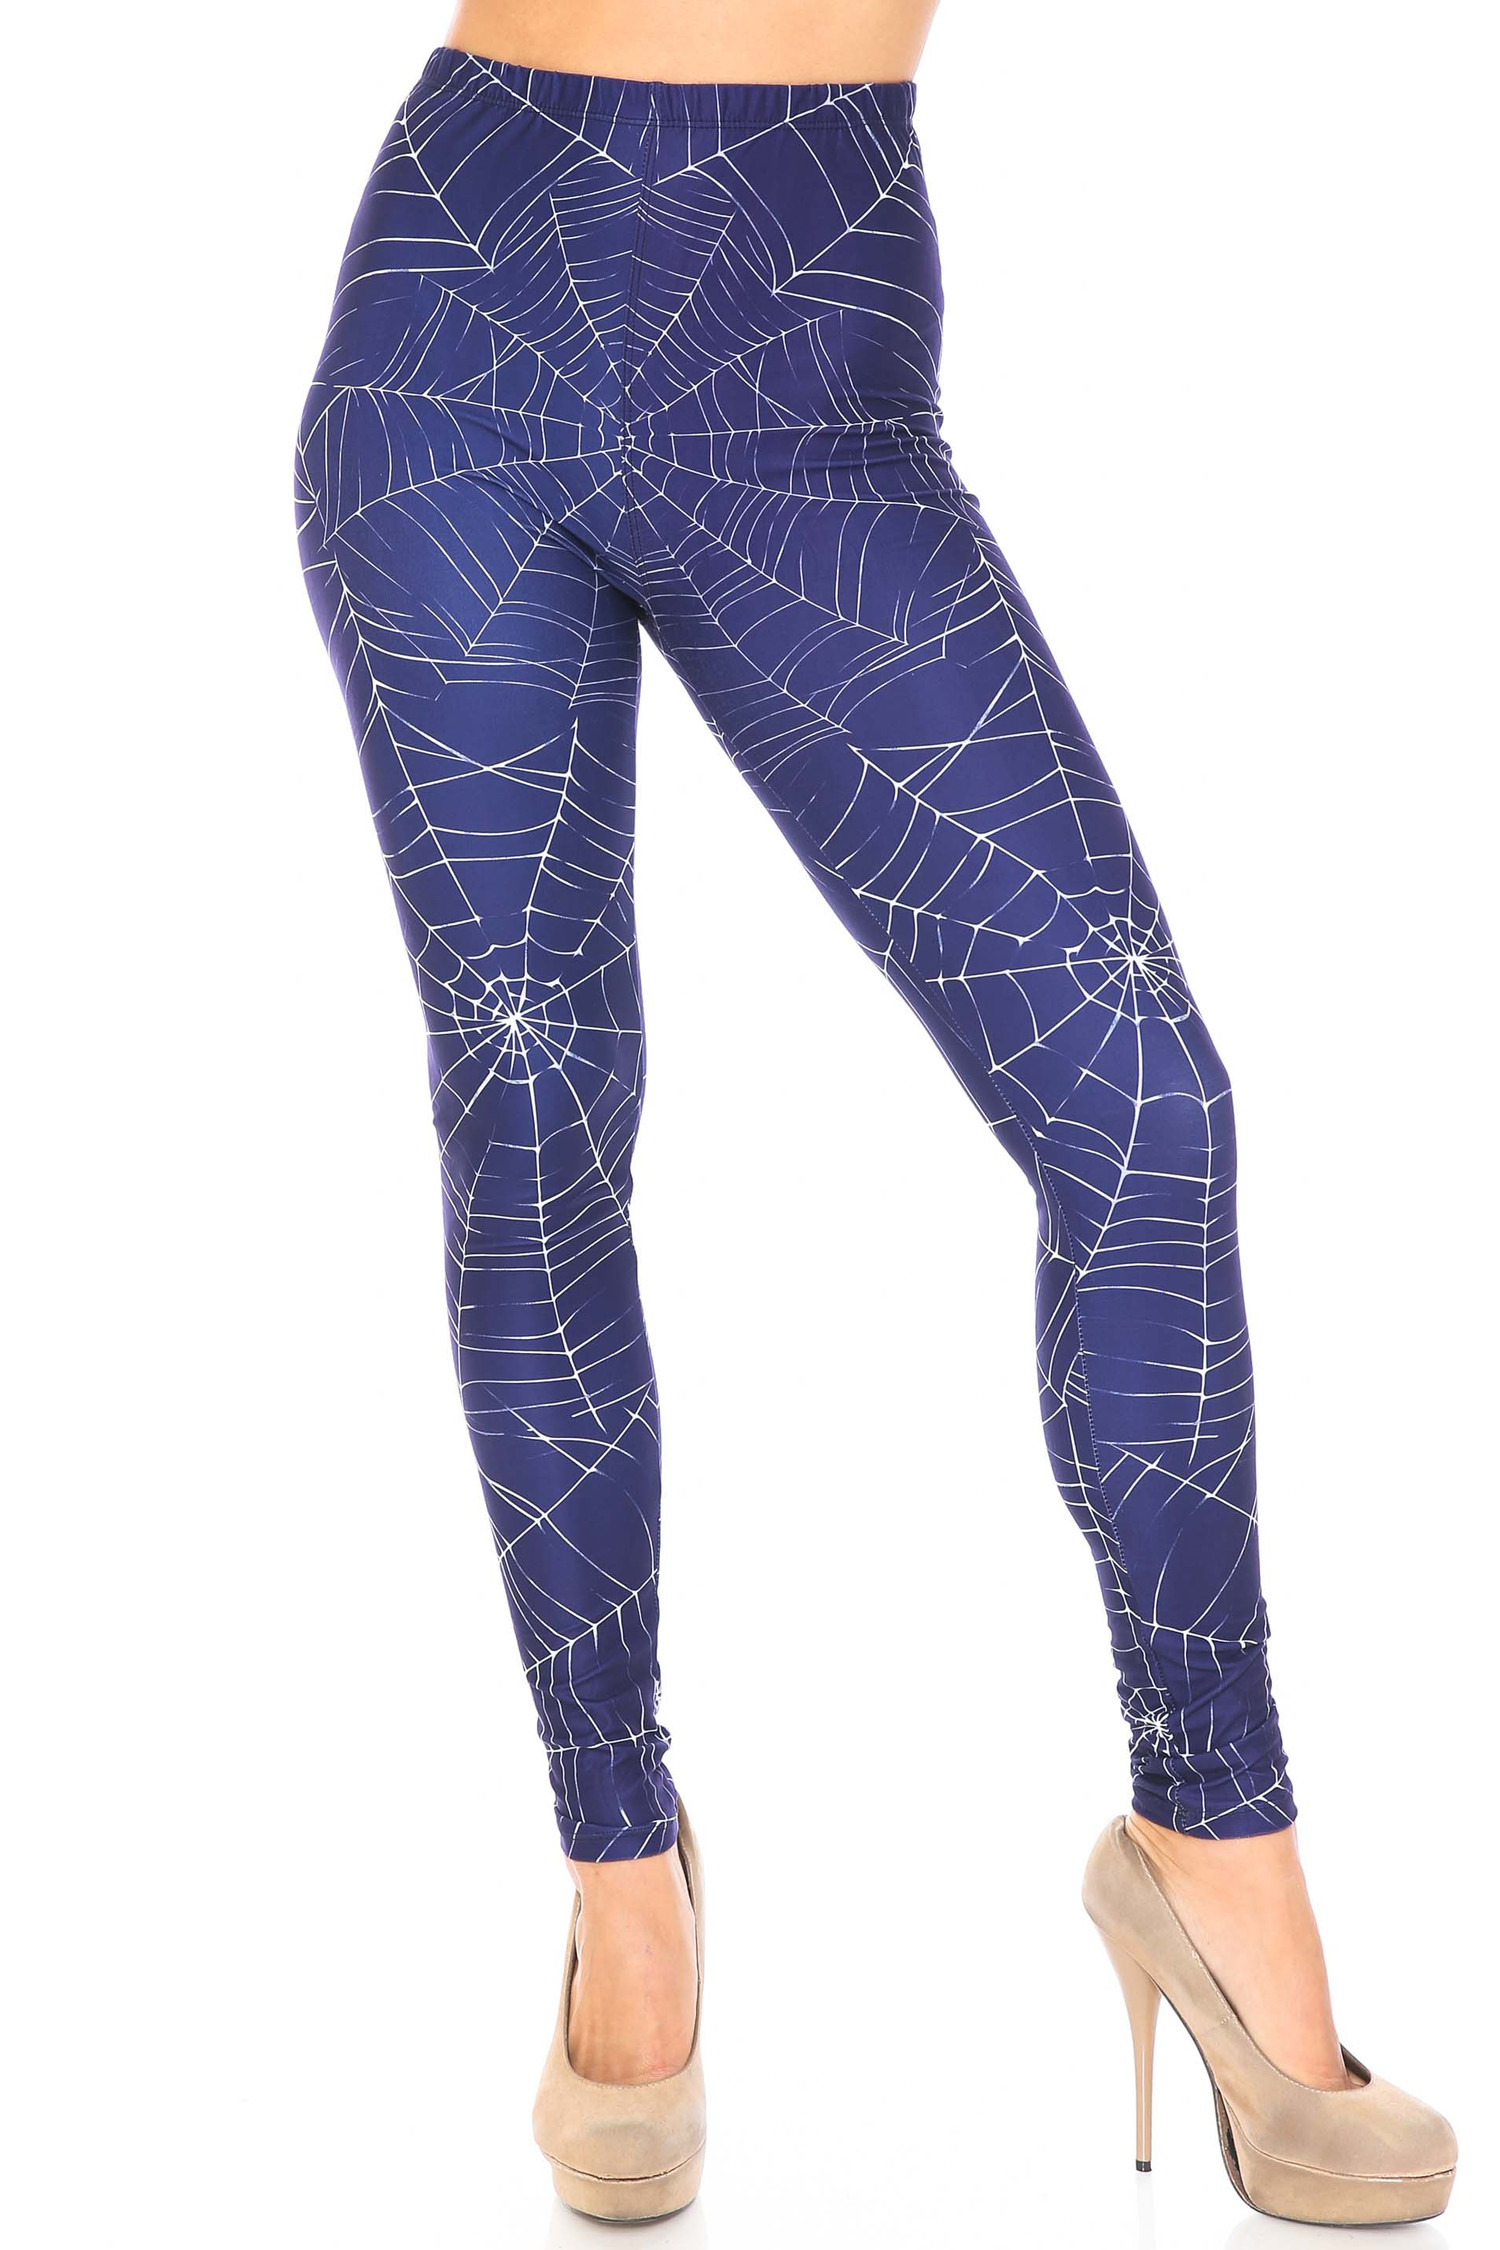 Front Creamy Soft Spiderwebs Halloween Extra Plus Size Leggings - 3X-5X - By USA Fashion™